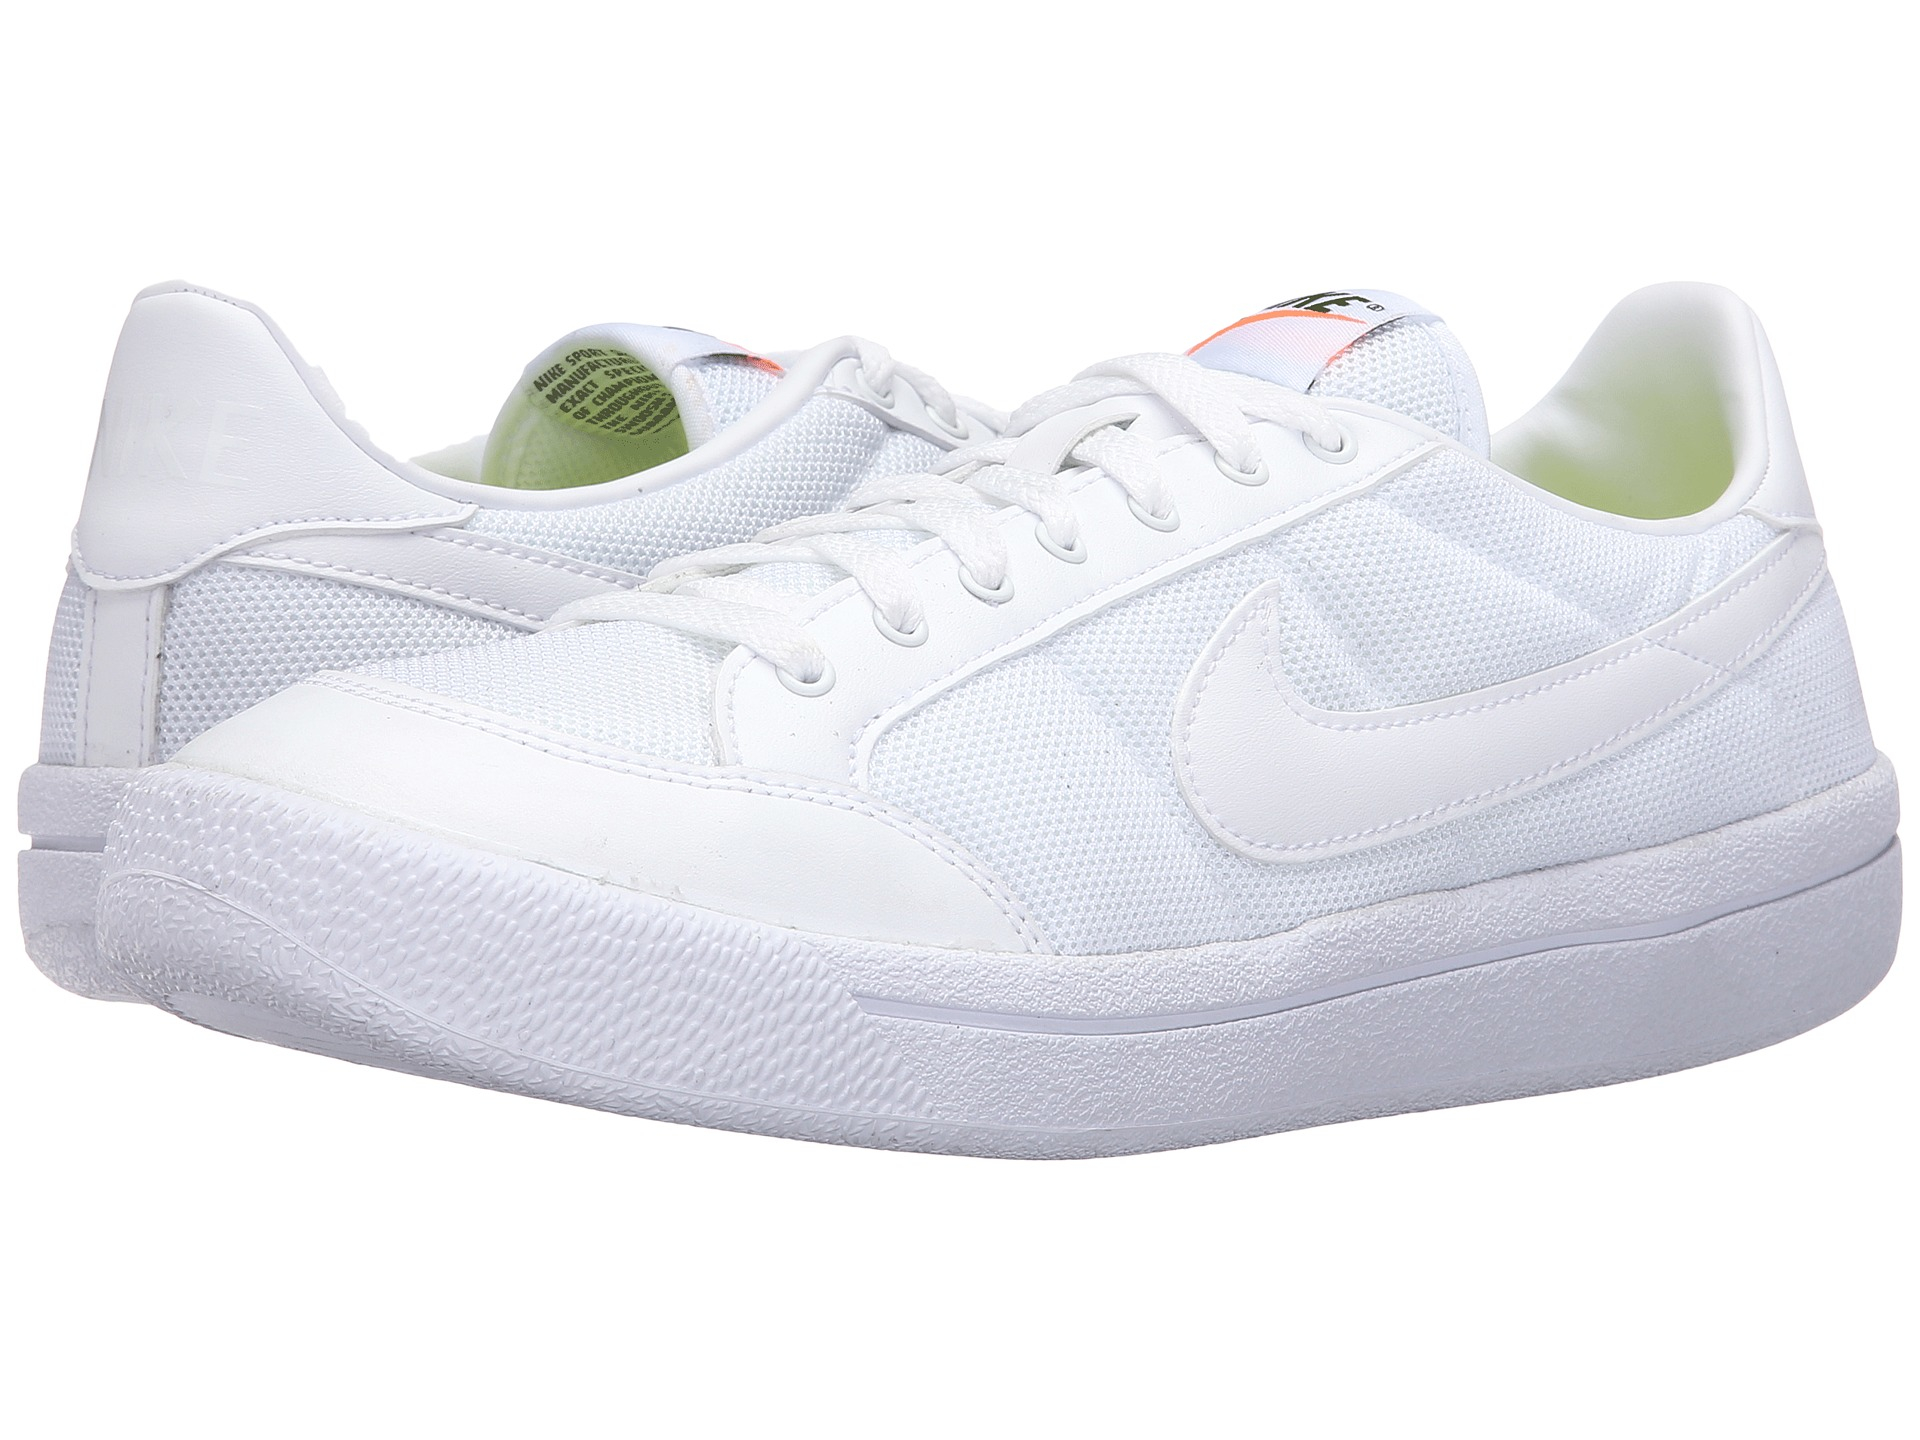 7f29a3b8ef8c Nike Mens Meadow 16 LTR Leather Low Top Lace Up Running Sneaker